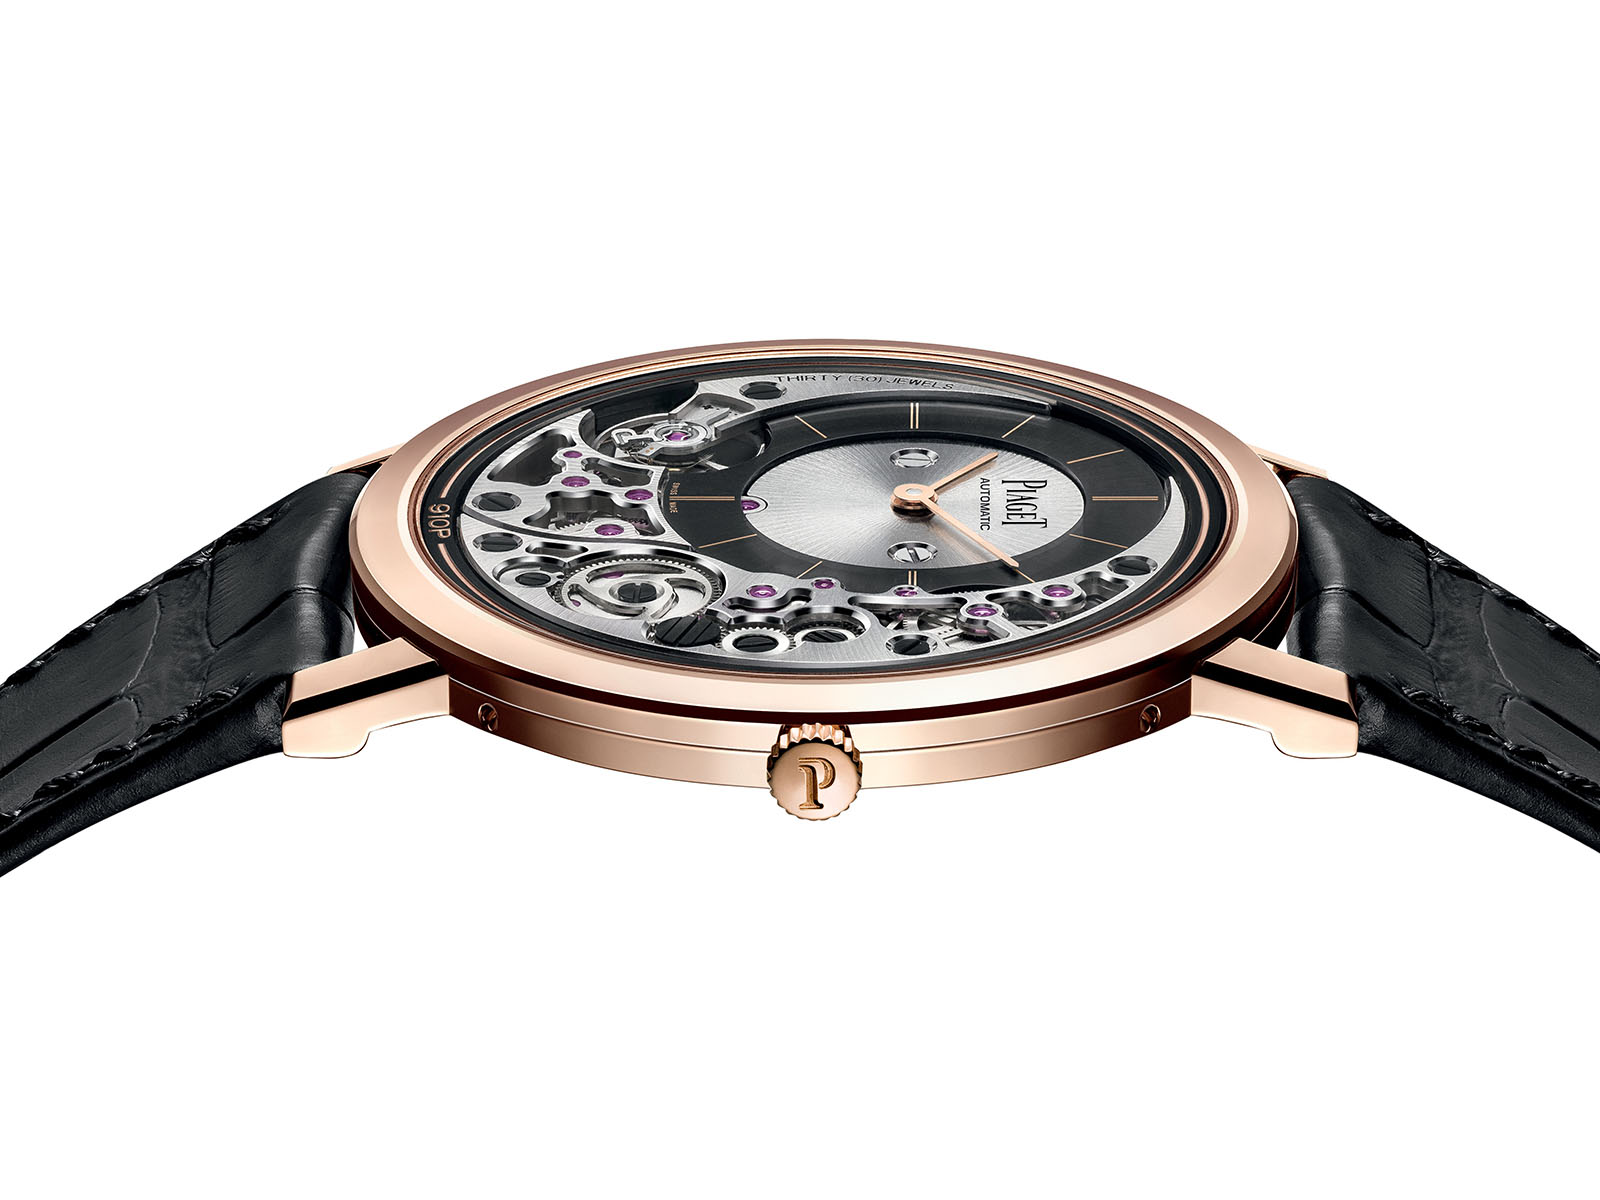 Piaget-Altiplano-Ultimate-910P-5.jpg